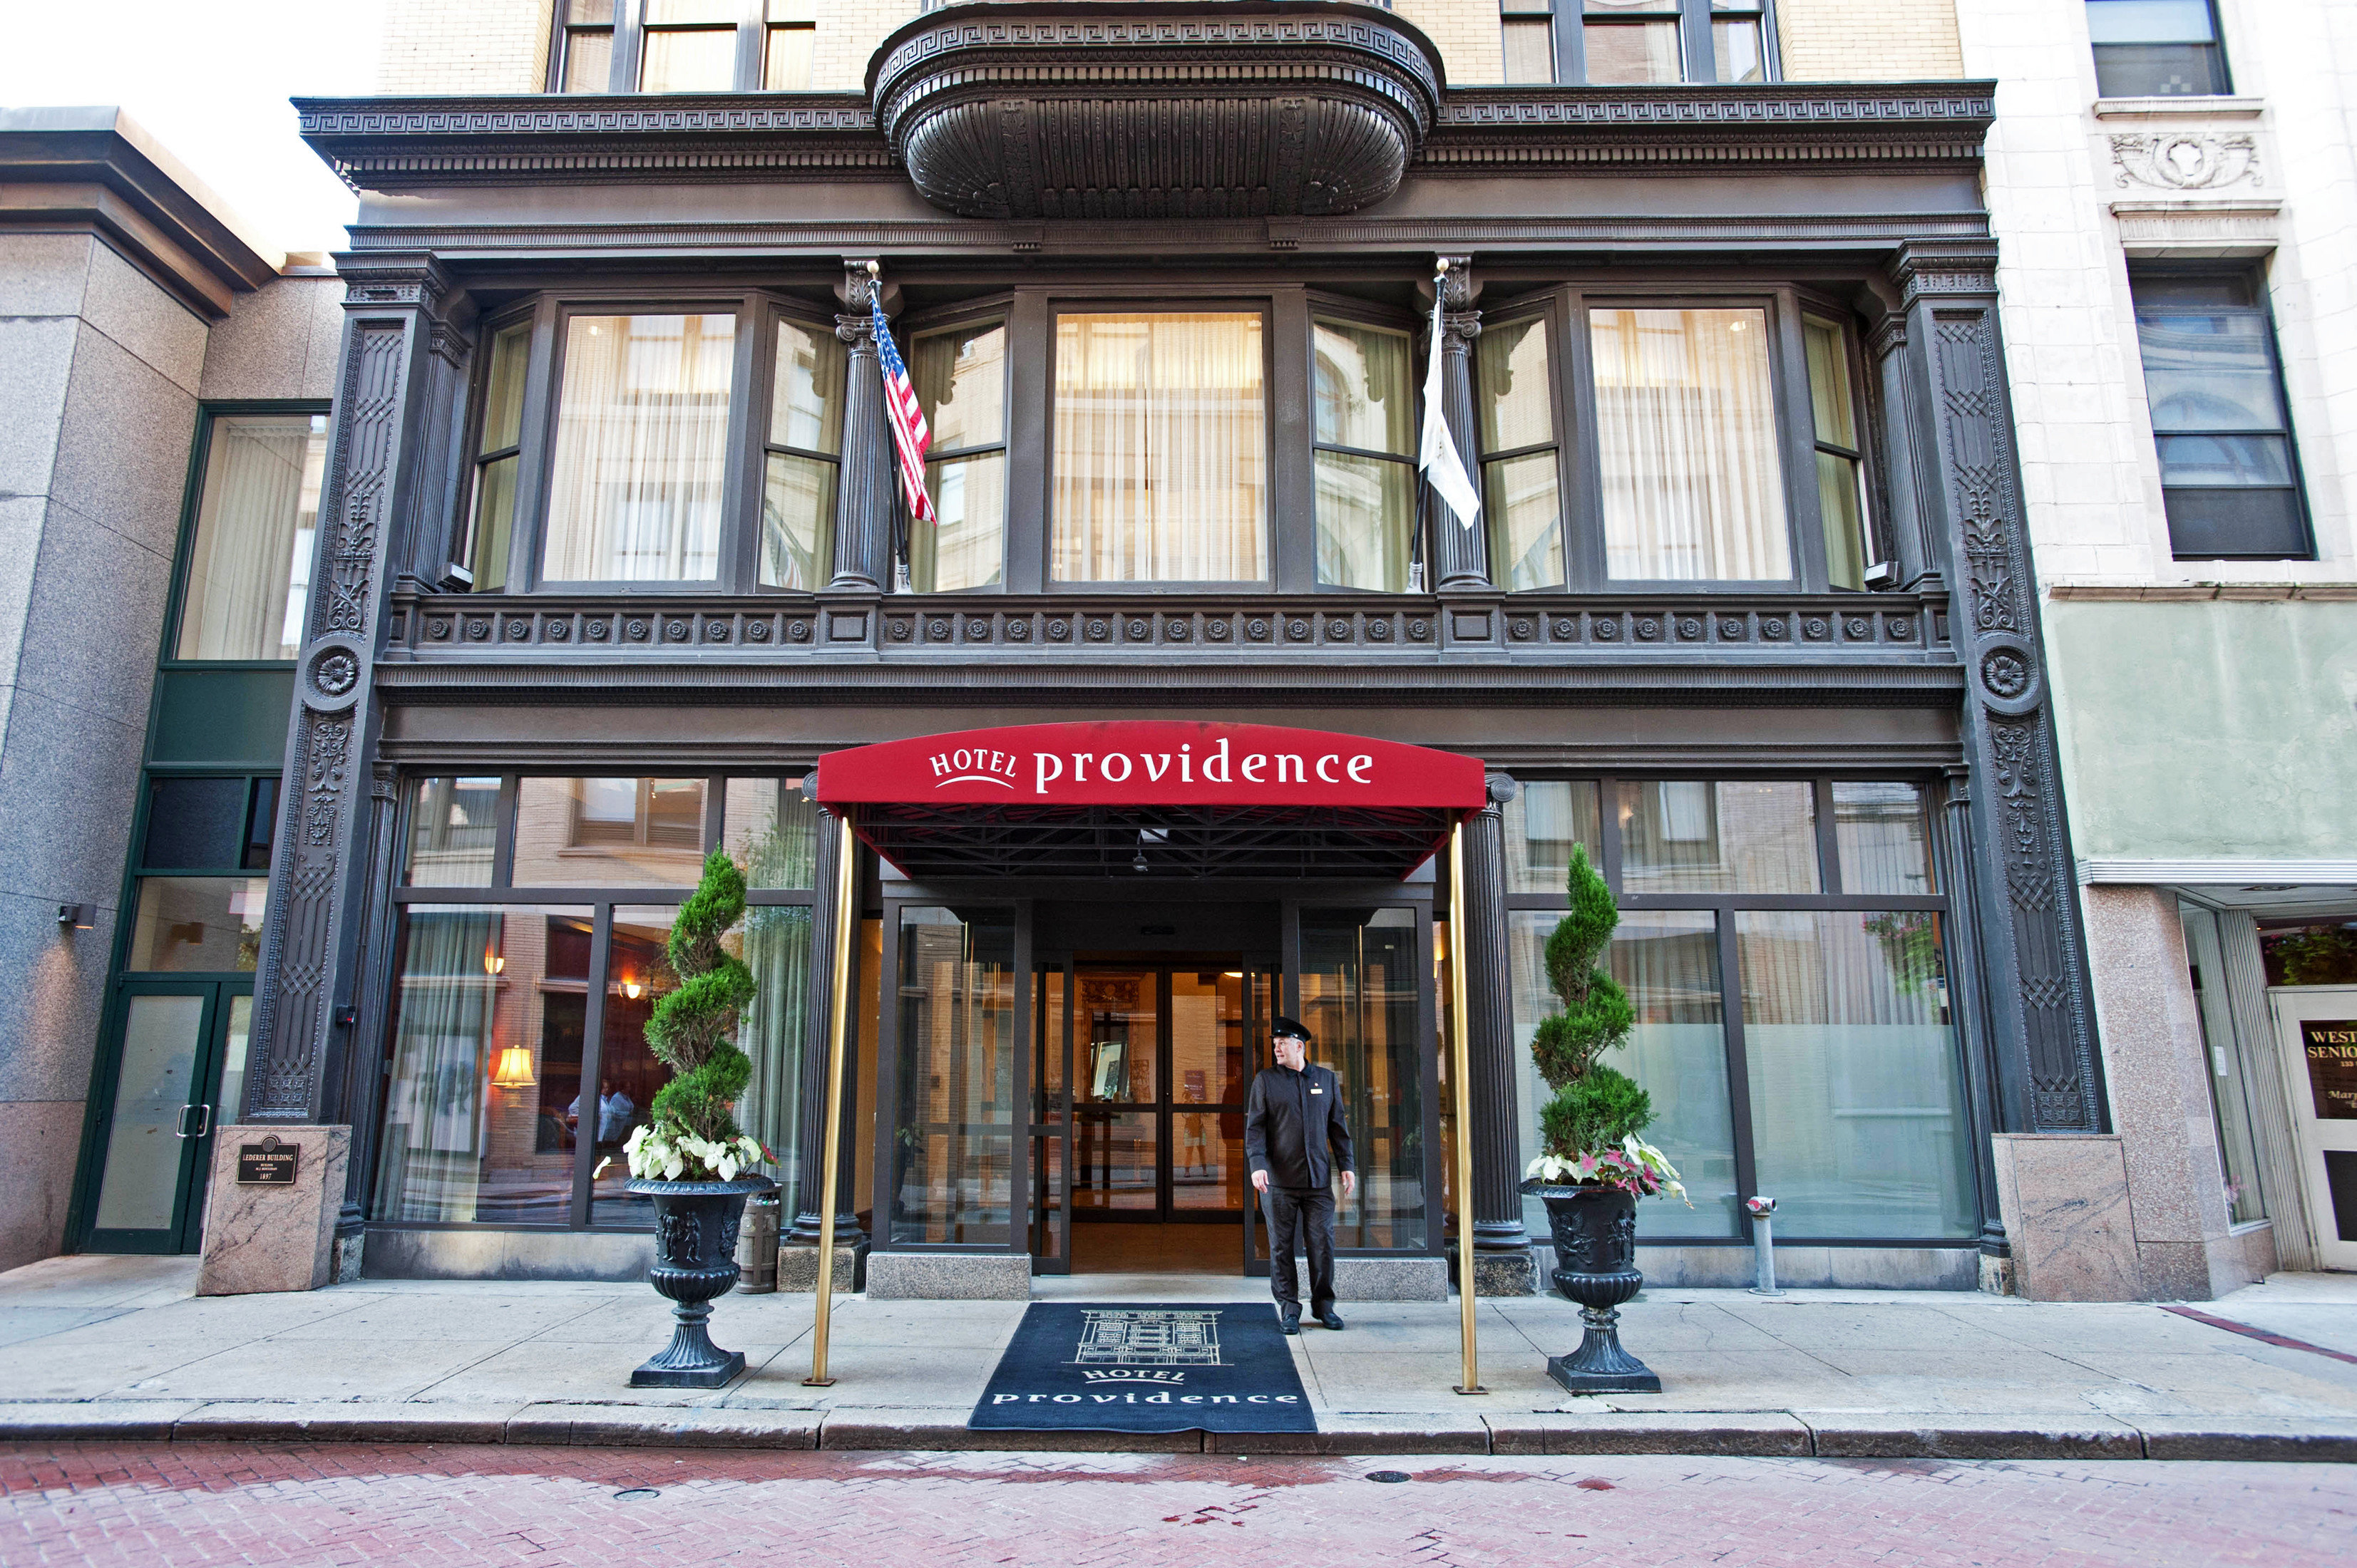 Boutique Exterior Historic building Town neighbourhood street Architecture sidewalk Downtown plaza curb stone